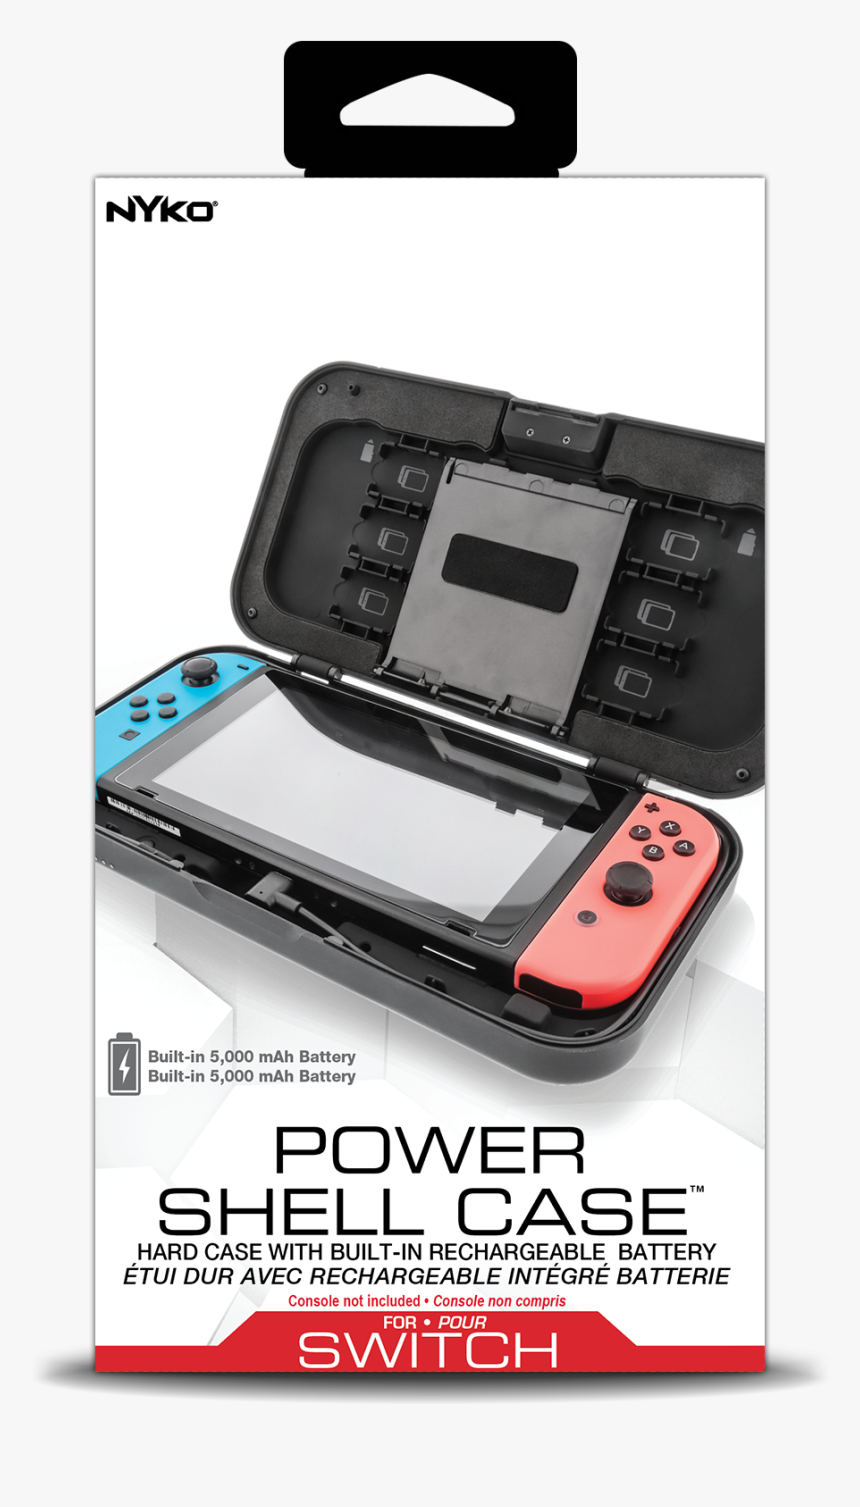 Nintendo Switch Nyko Power Shell Case, HD Png Download, Free Download